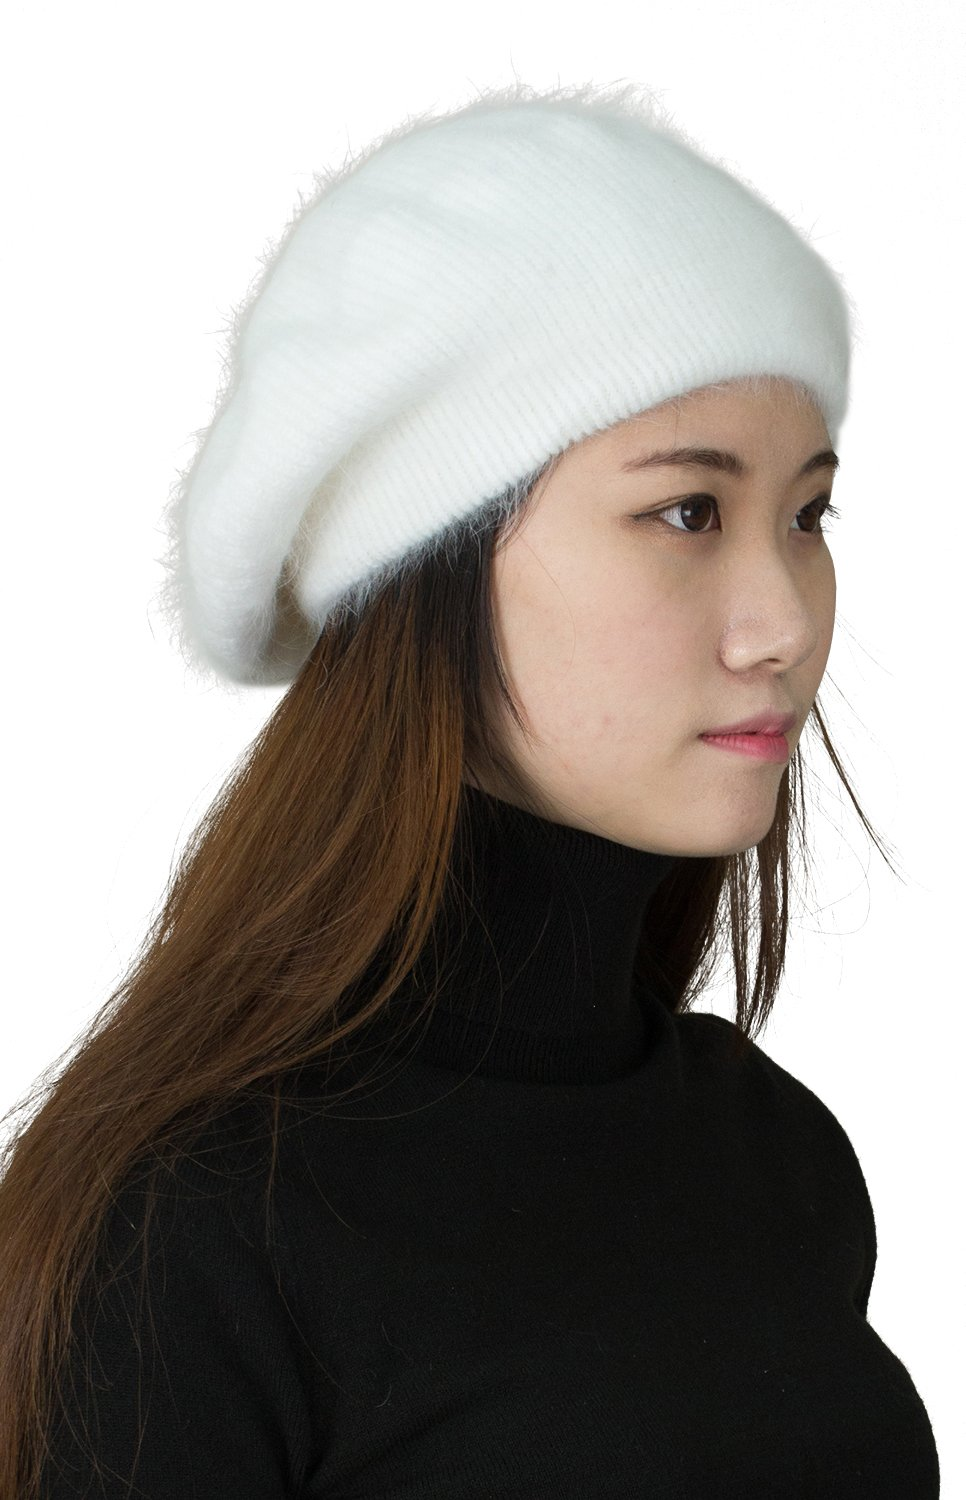 CapHouse Fine Ribbed Womens Angora Knit Winter Beanie Hat,Cream by CapHouse (Image #2)